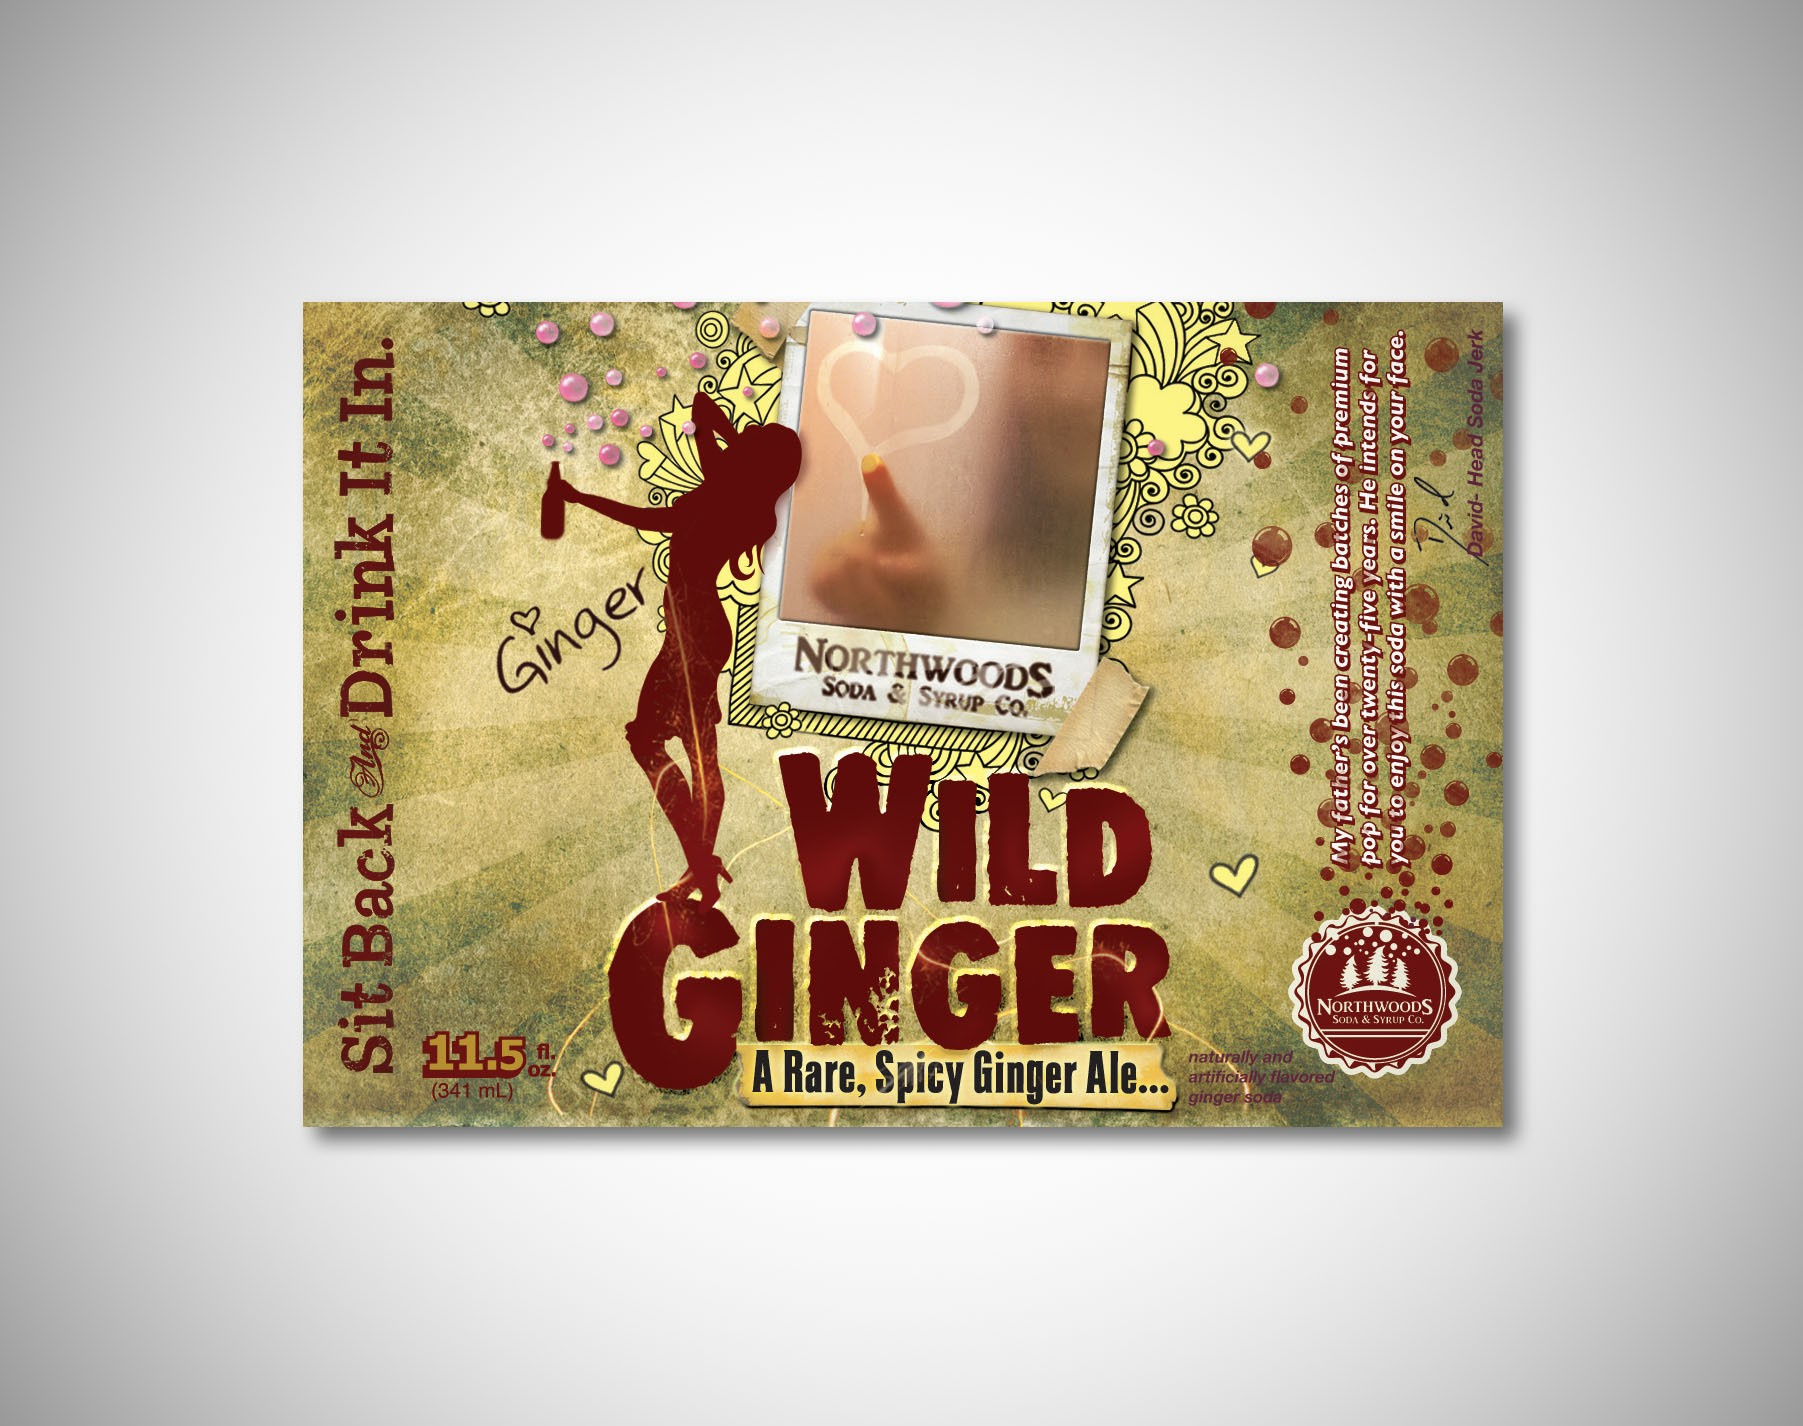 Wild Bill's Wild Ginger